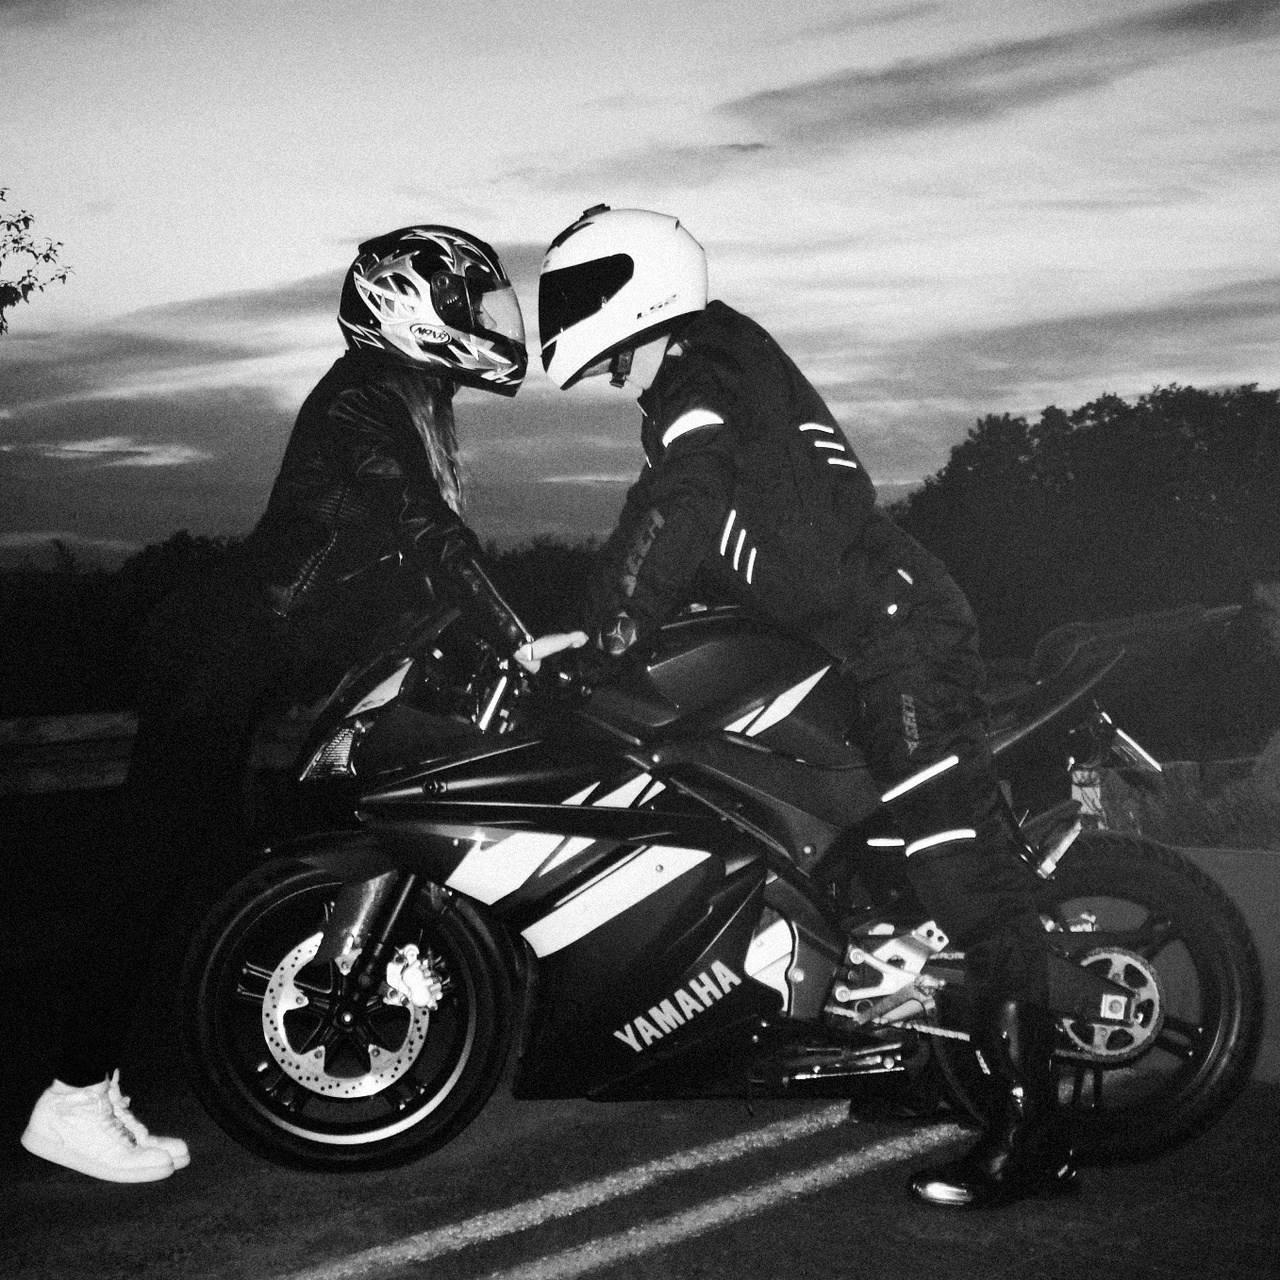 93 Images About Motorcycle Couples On We Heart It See More About Love Couple And Motorcycle